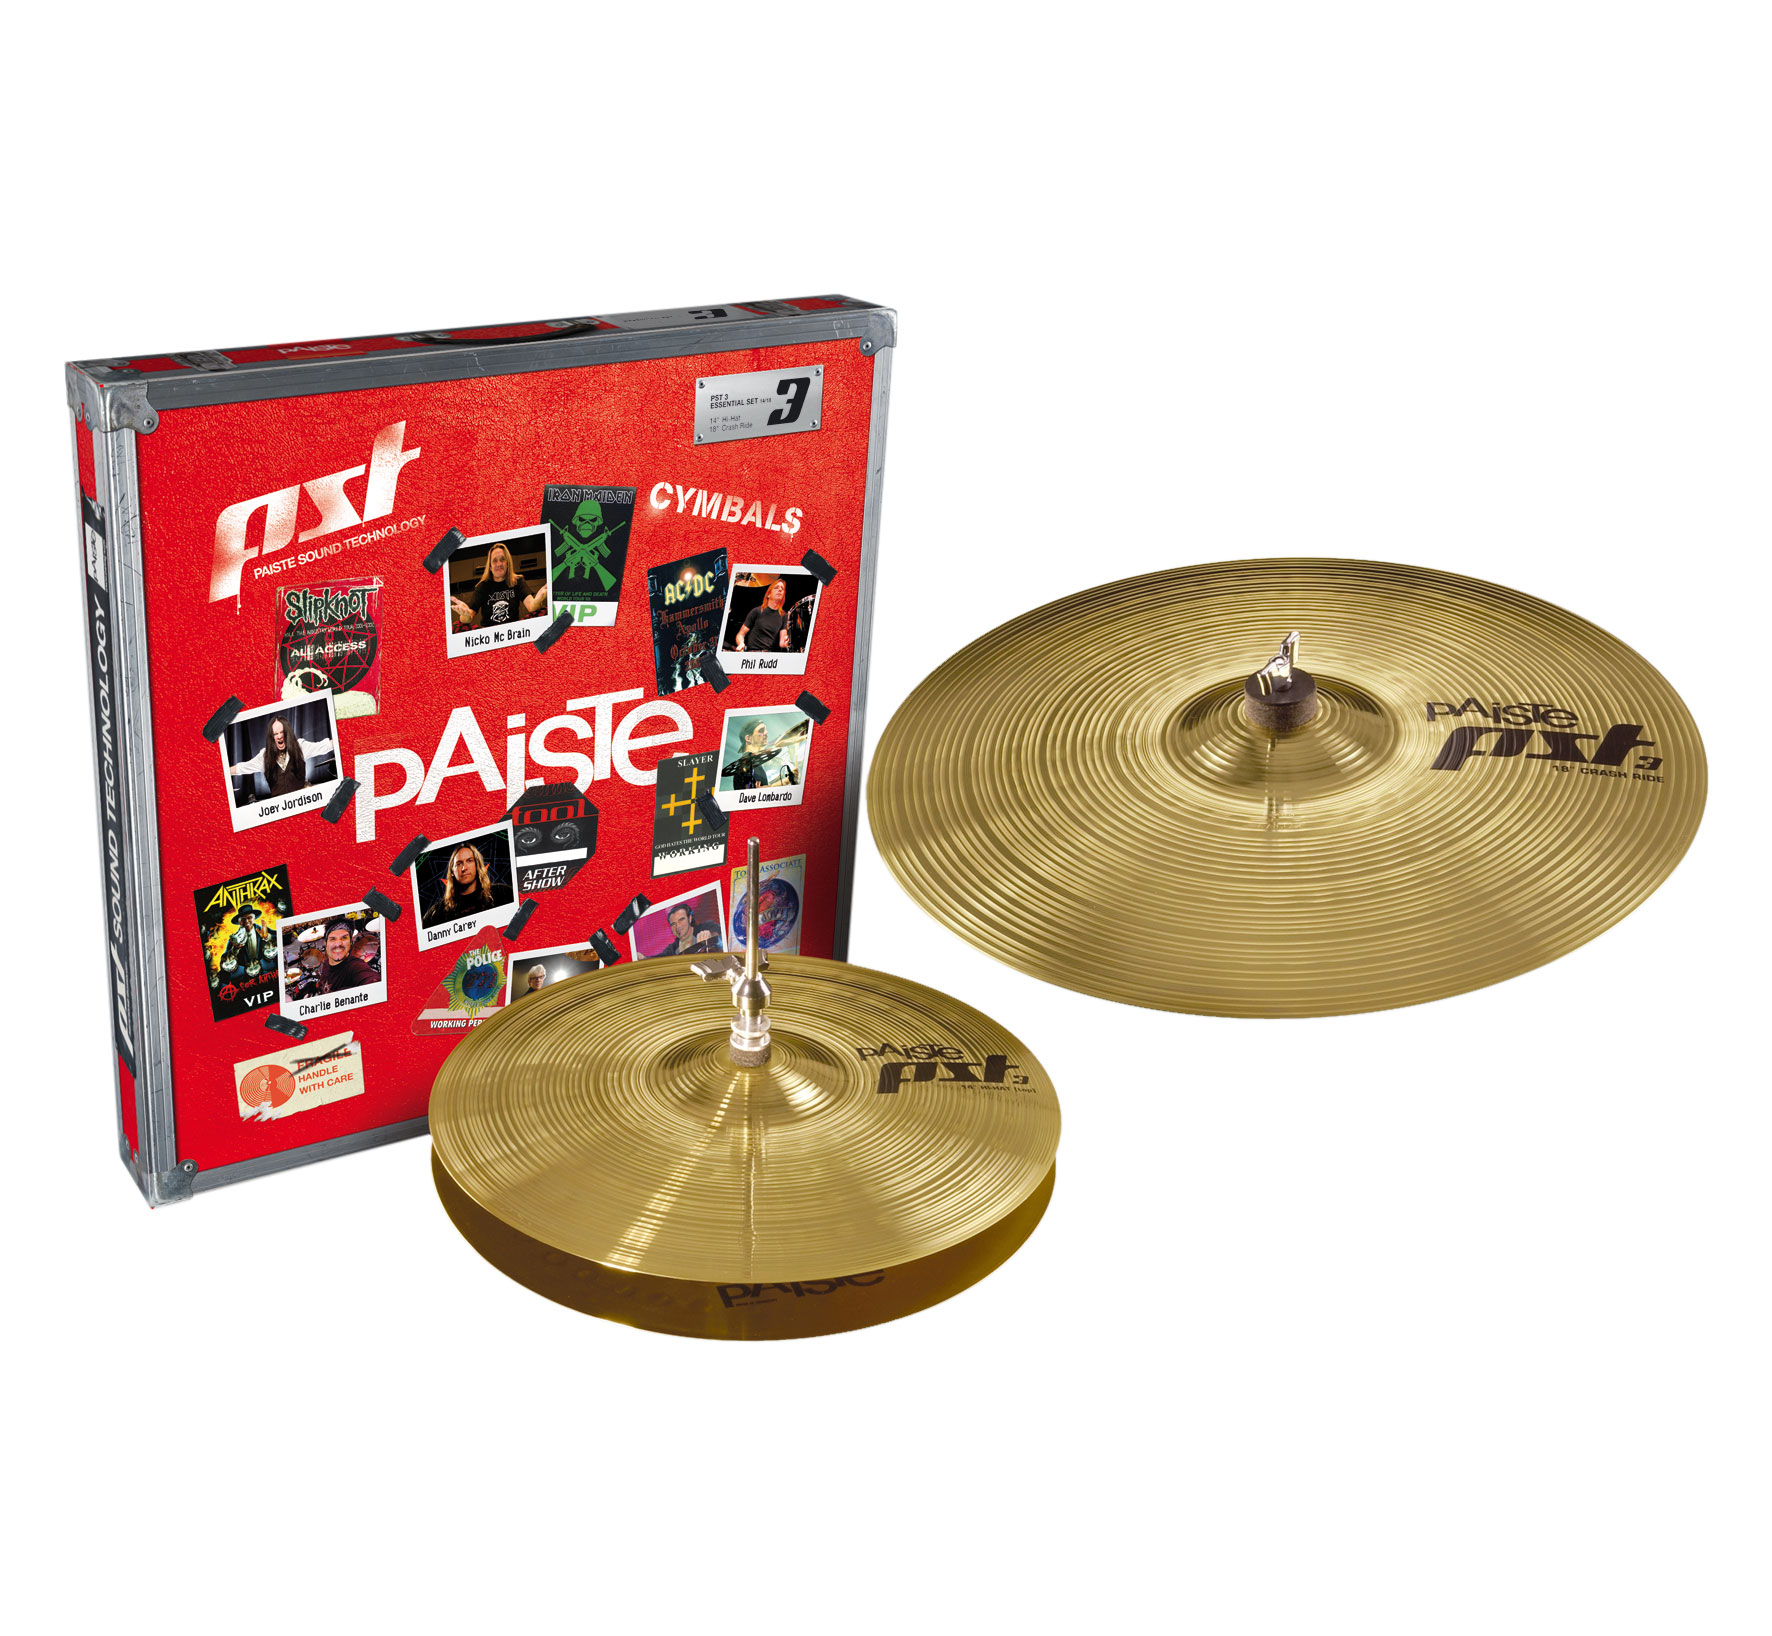 Paiste PST 3 Essential Pack 2-Piece Cymbal Box Set (Hi Hats, Crash/Ride)